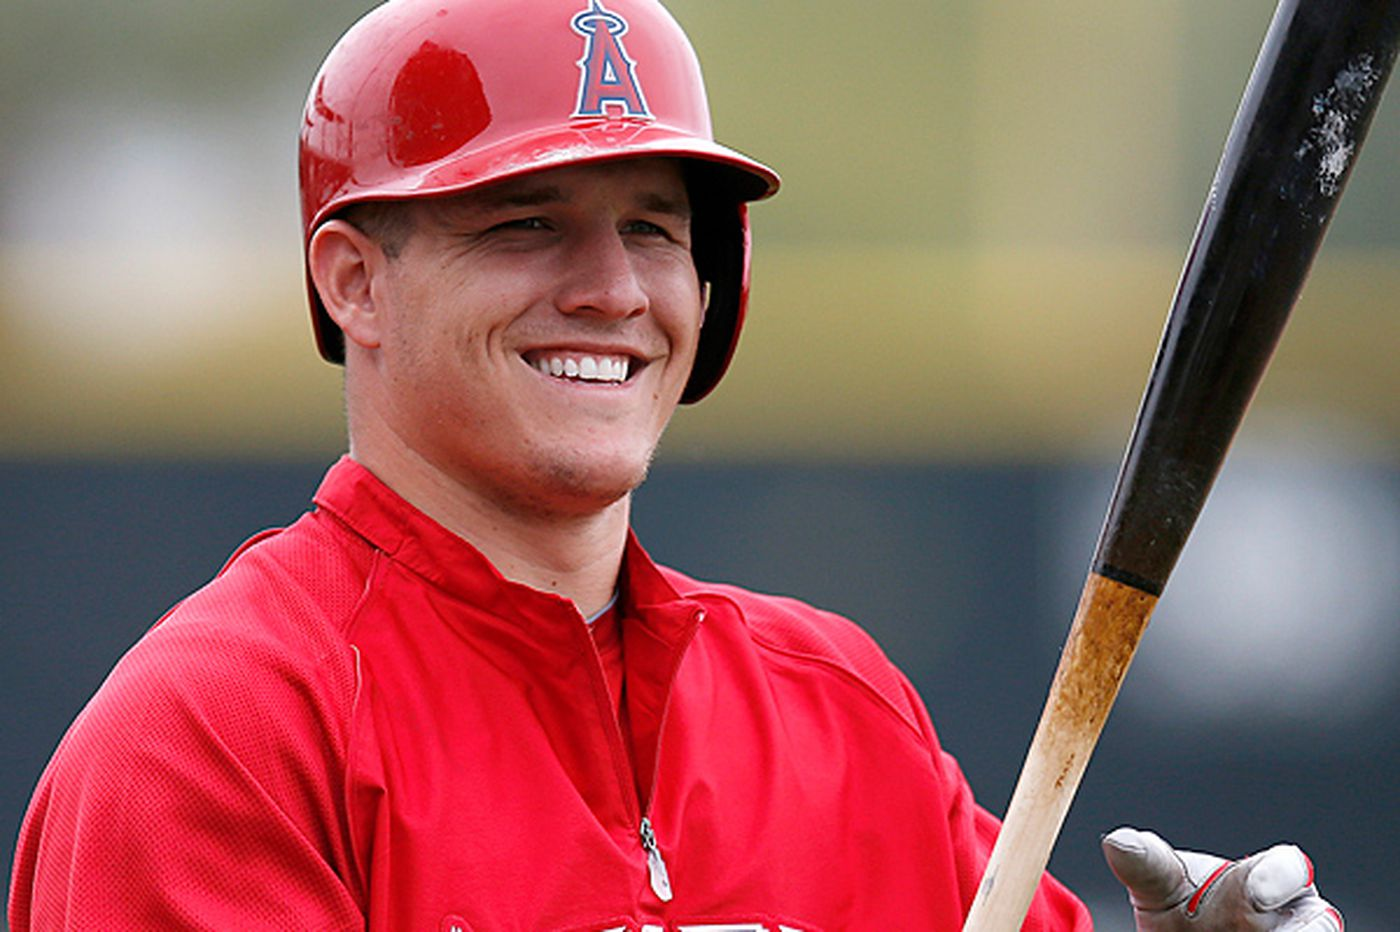 Mike Trout takes a break from endless Phillies speculation to track some snow